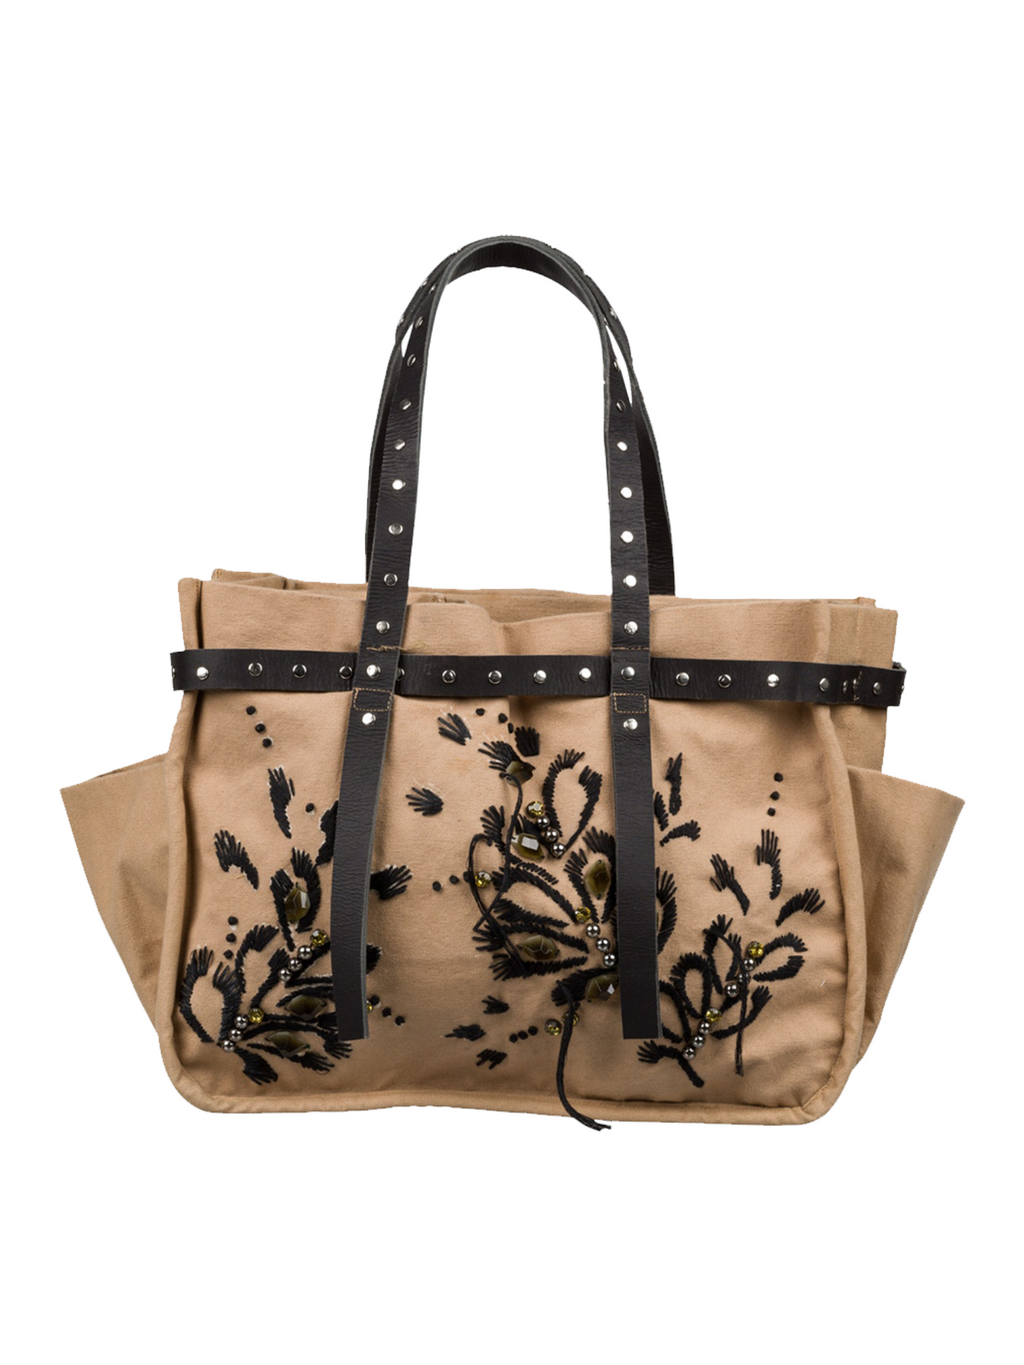 Dorothee Schumacher Embroidered Dreams Shopper Tote - Pre-Order